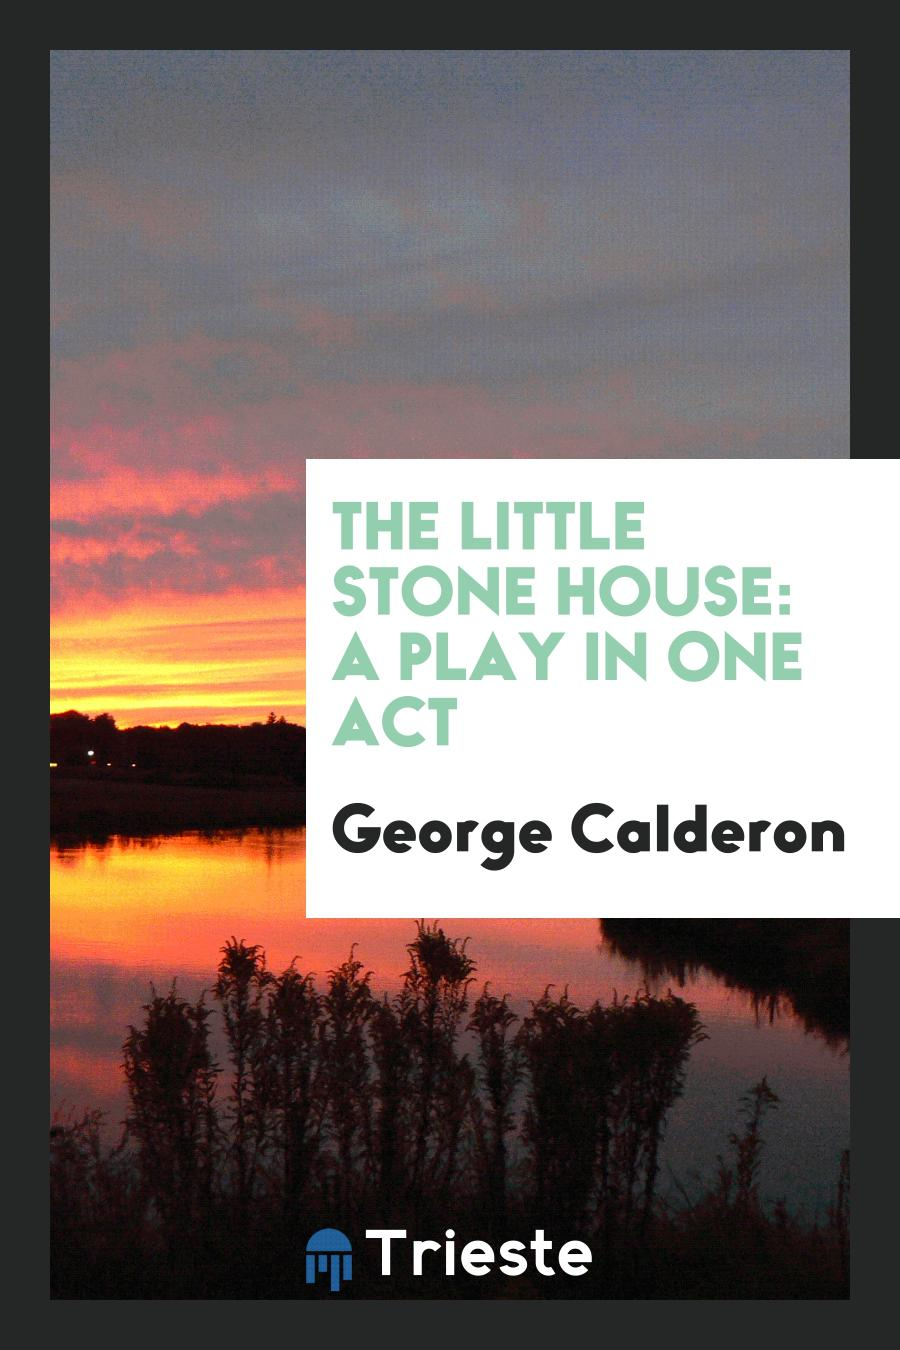 The Little Stone House: A Play in One Act